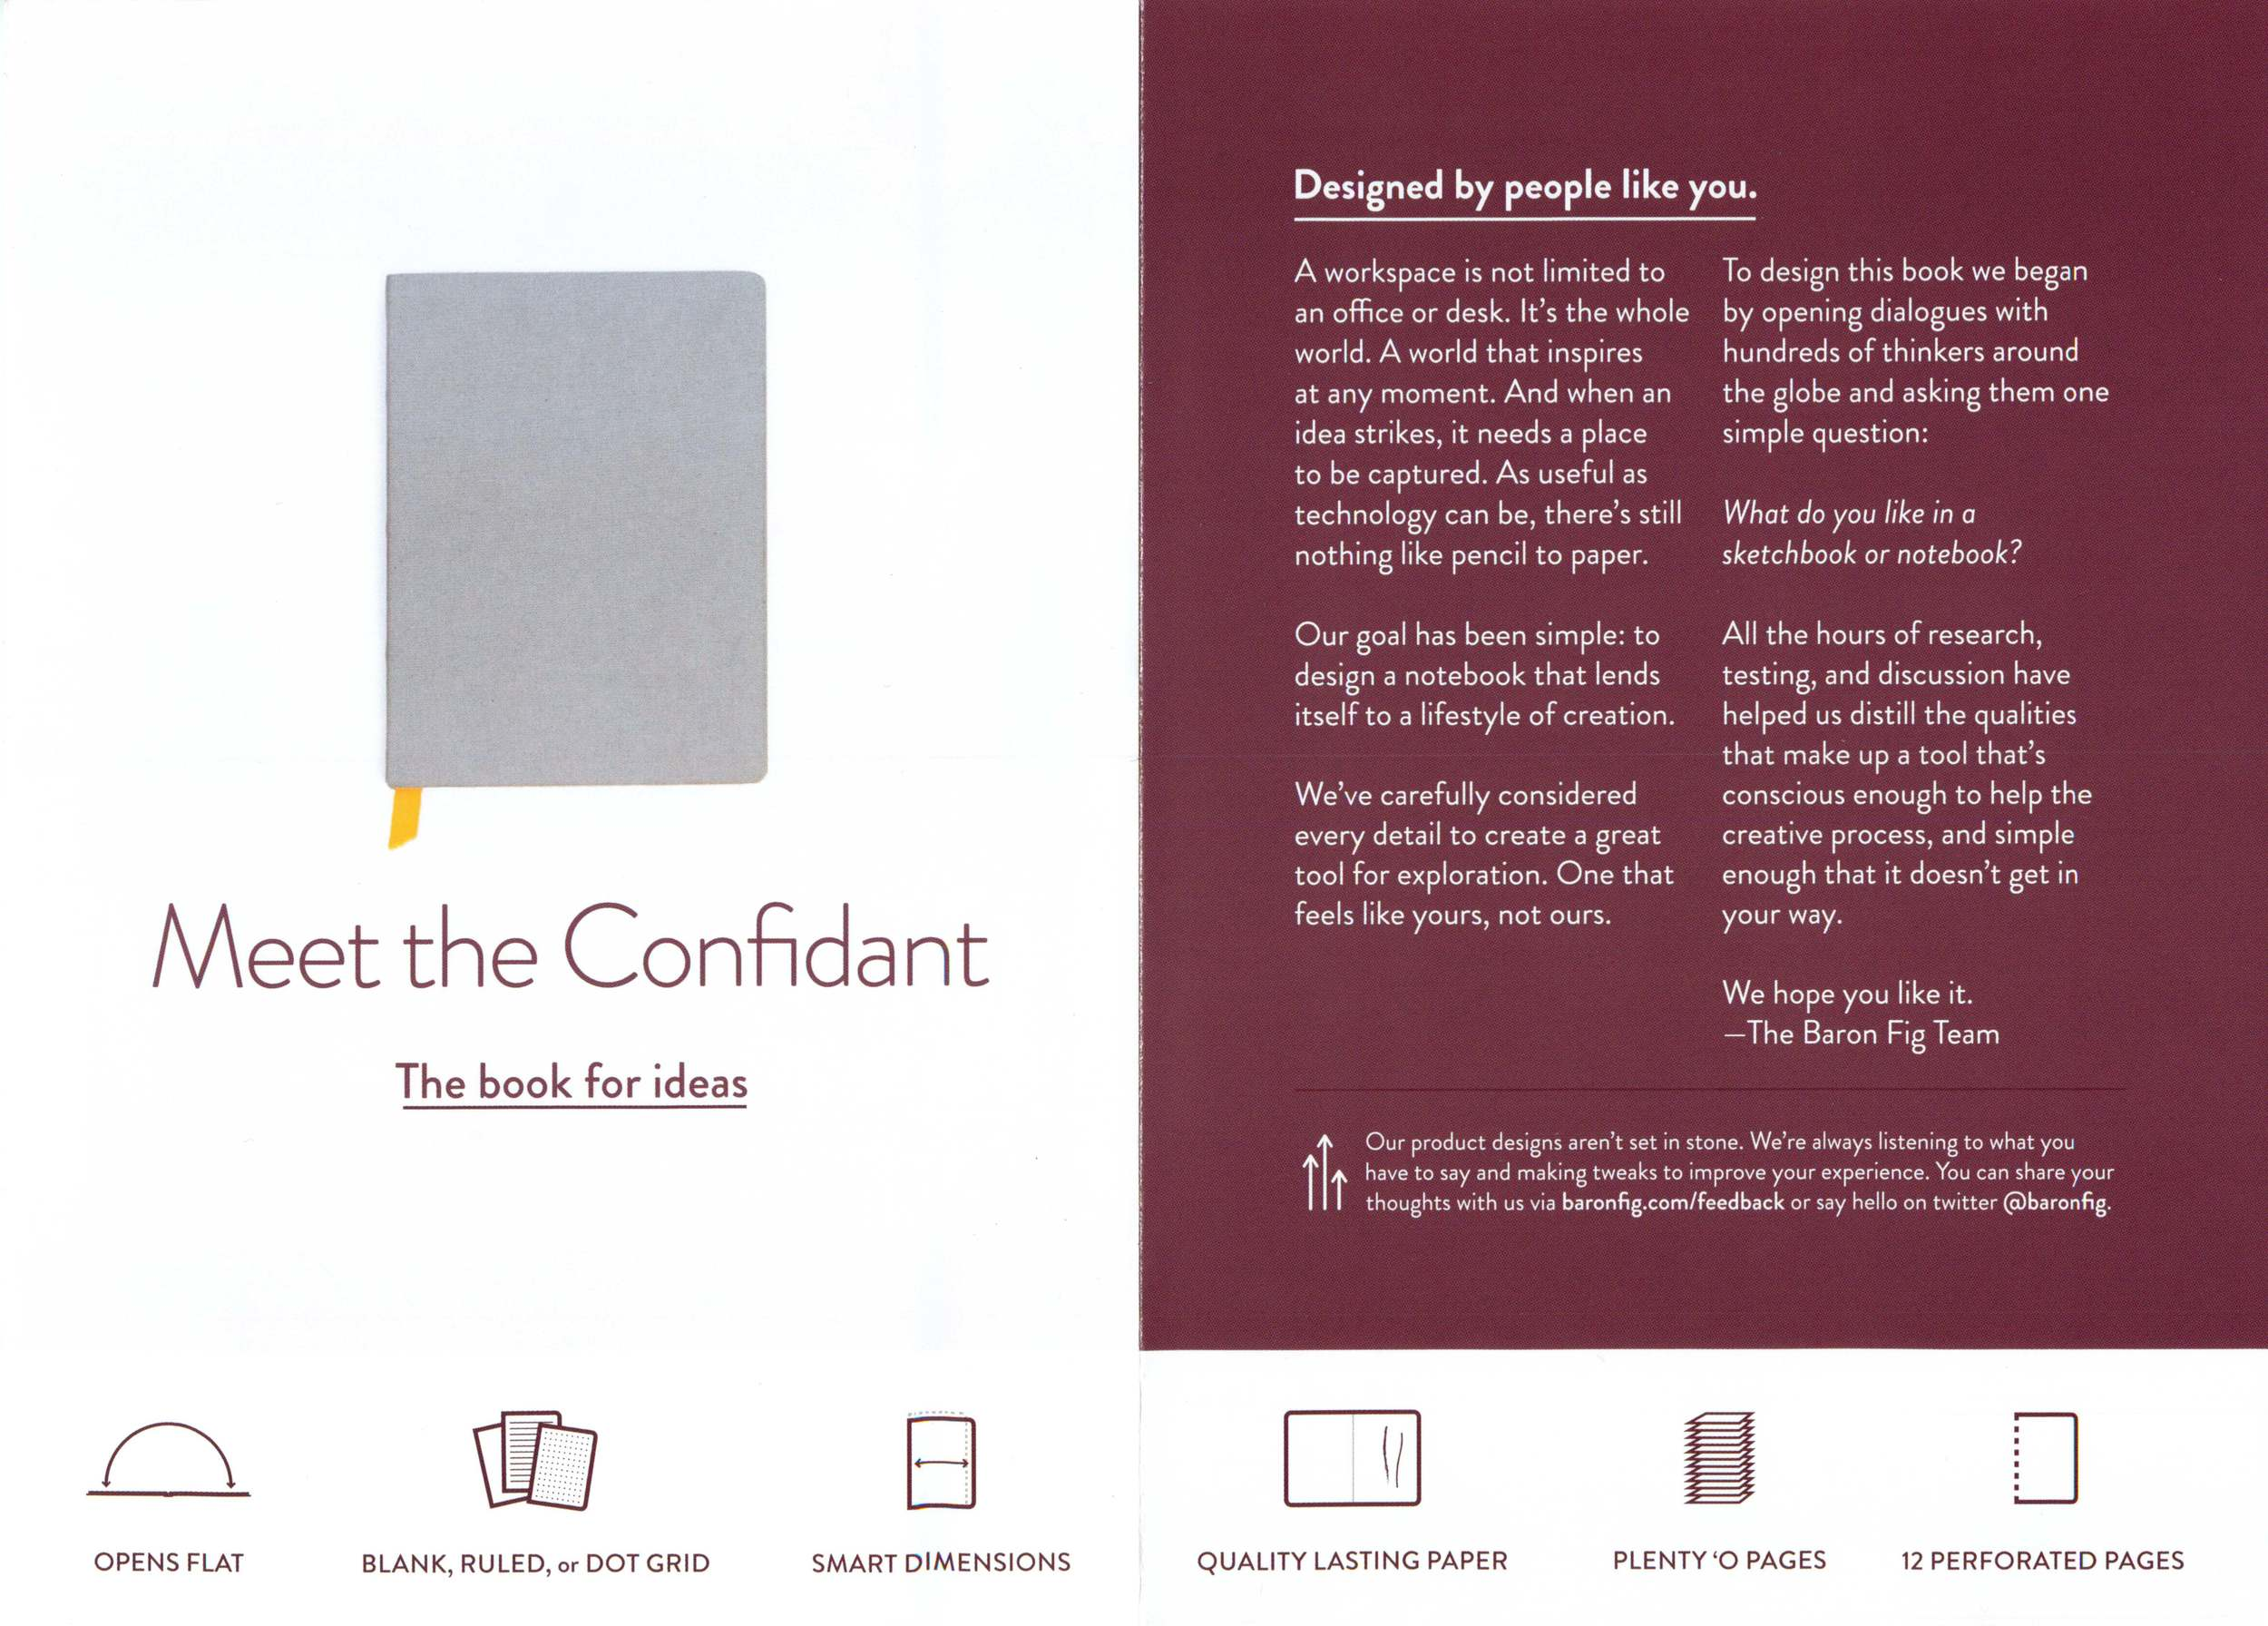 Baron Fig packaging insert. (Click to enlarge.)